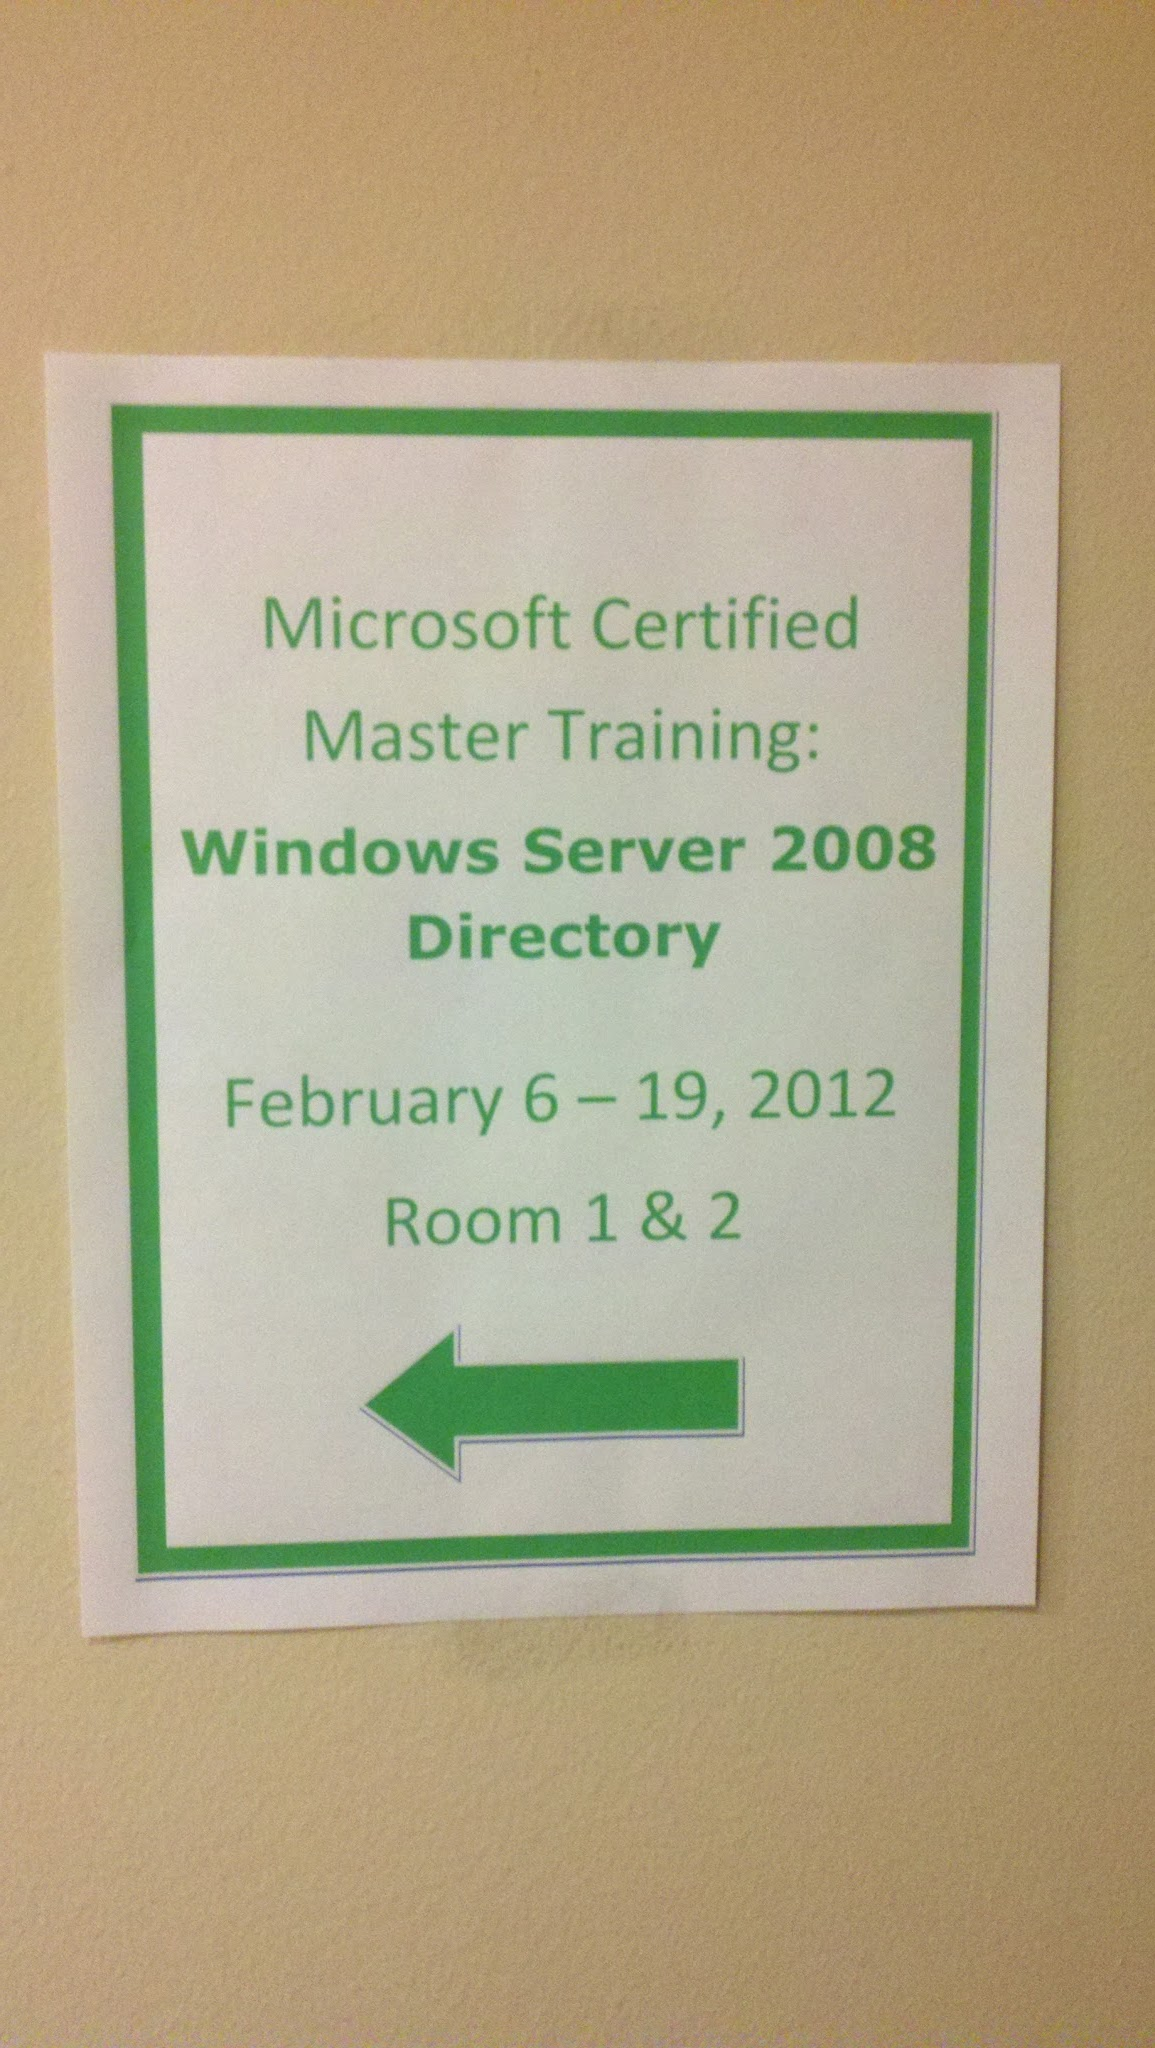 My journey to become a microsoft certified master mcm part 2 arrived xflitez Image collections